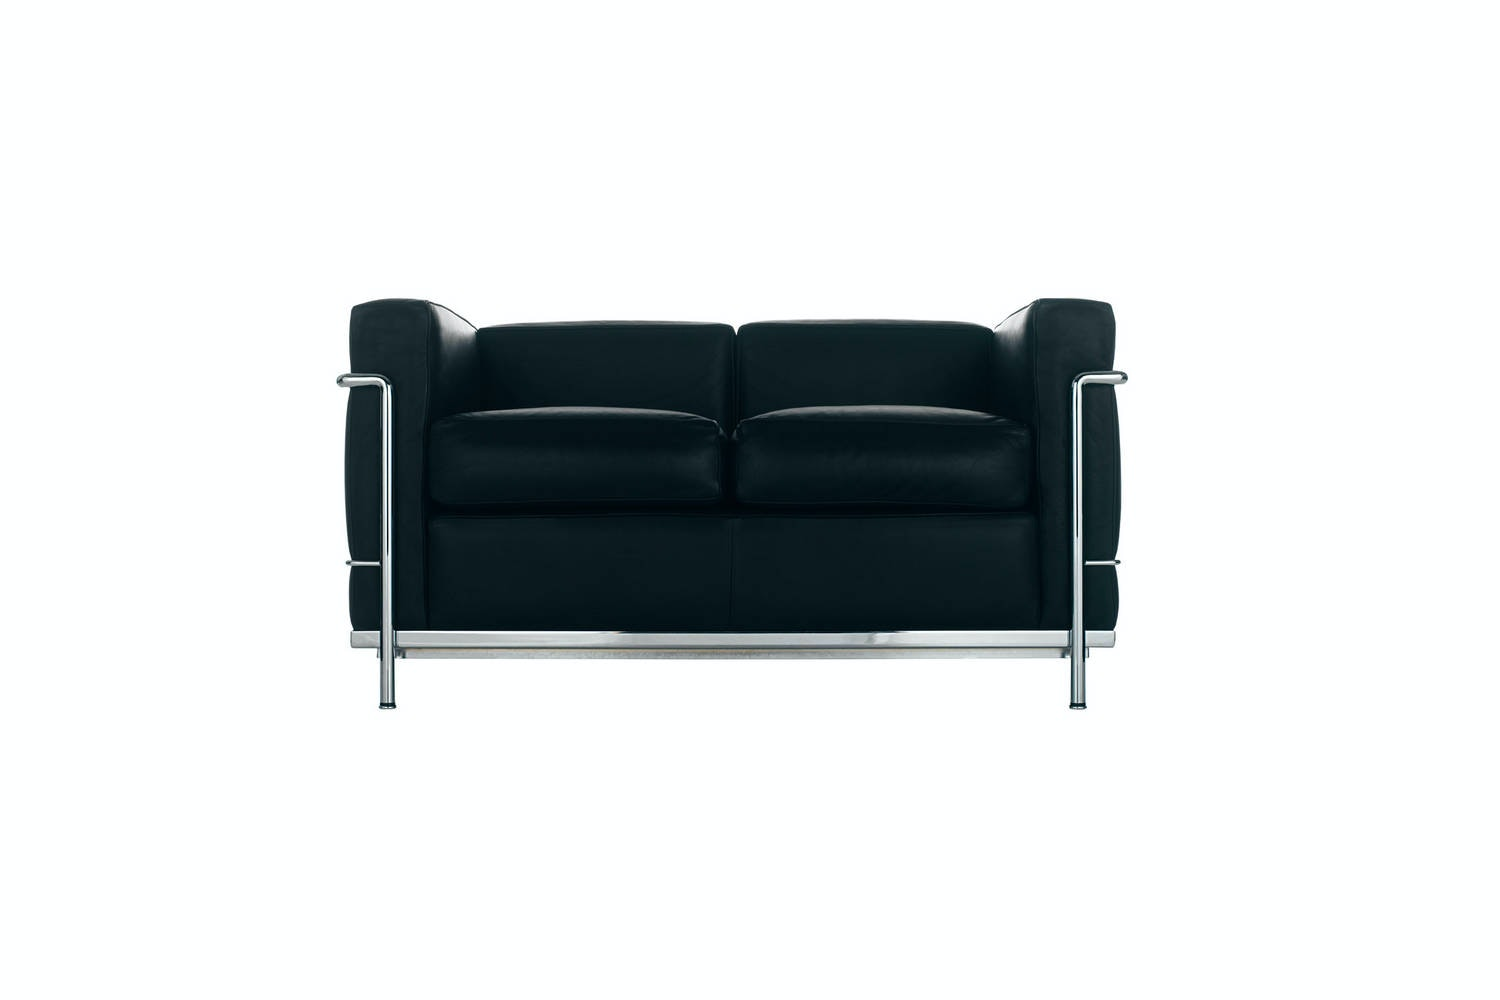 LC2 Sofa by Le Corbusier, Pierre Jeanneret, Charlotte Perriand for Cassina